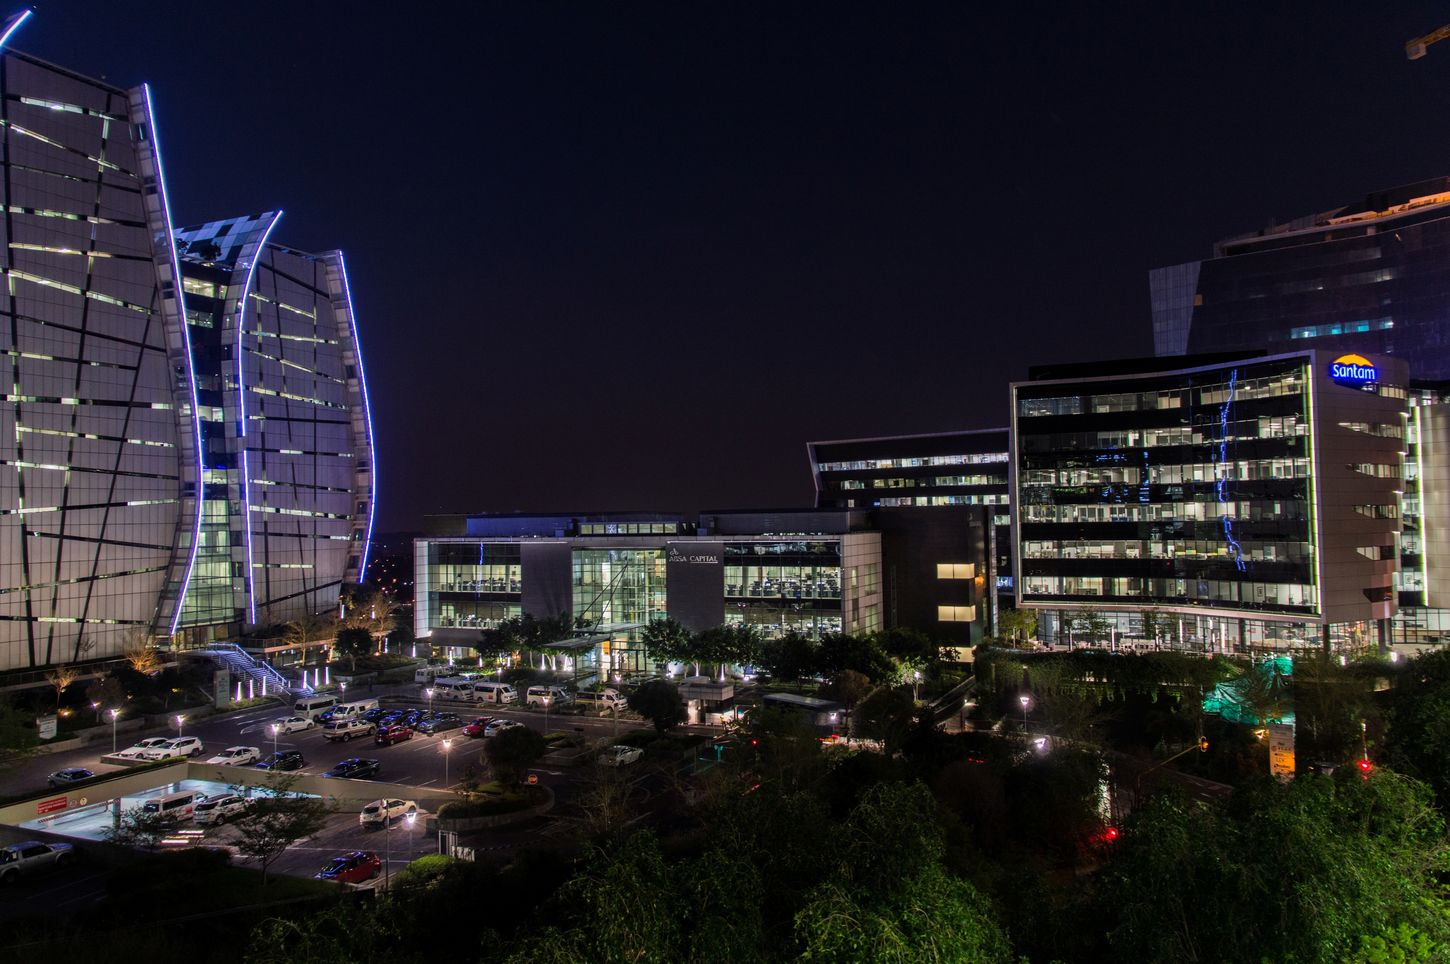 Architecture Built Structure Building Exterior City Clear Sky Illuminated Office Building Modern Sky Outdoors Urban Skyline After Sunset Parking Space Office Buildings Lights Norton Rose Absa Bank Of China Santam Enjoying Life Taking Photos Sandton South Africa